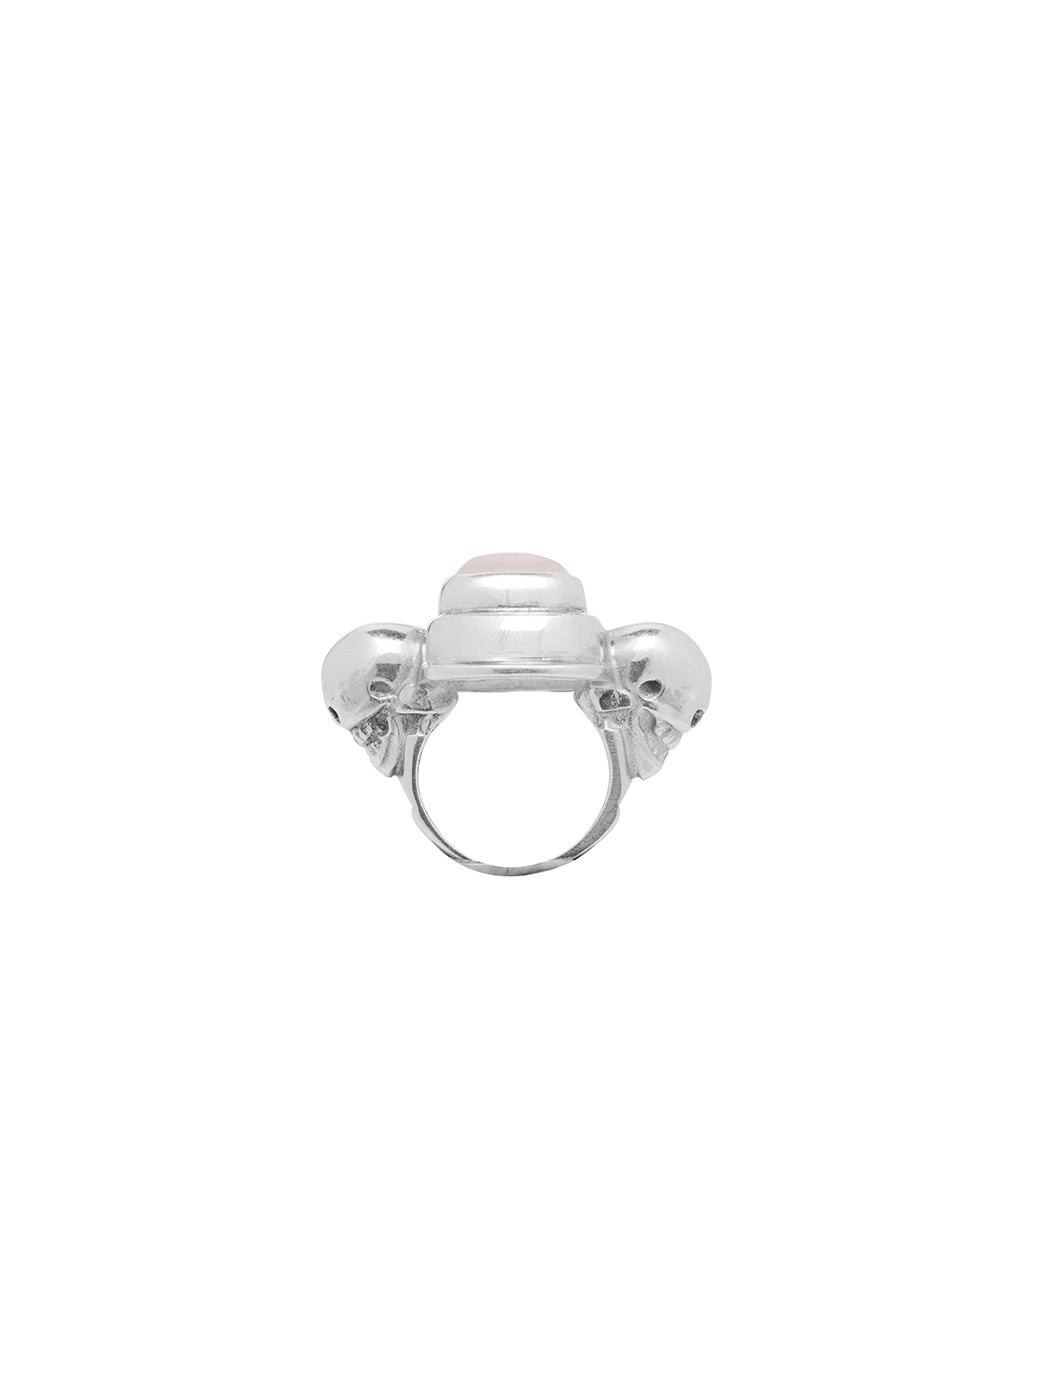 Fiorina Jewellery Chrysler Ring Rose Quartz Side View